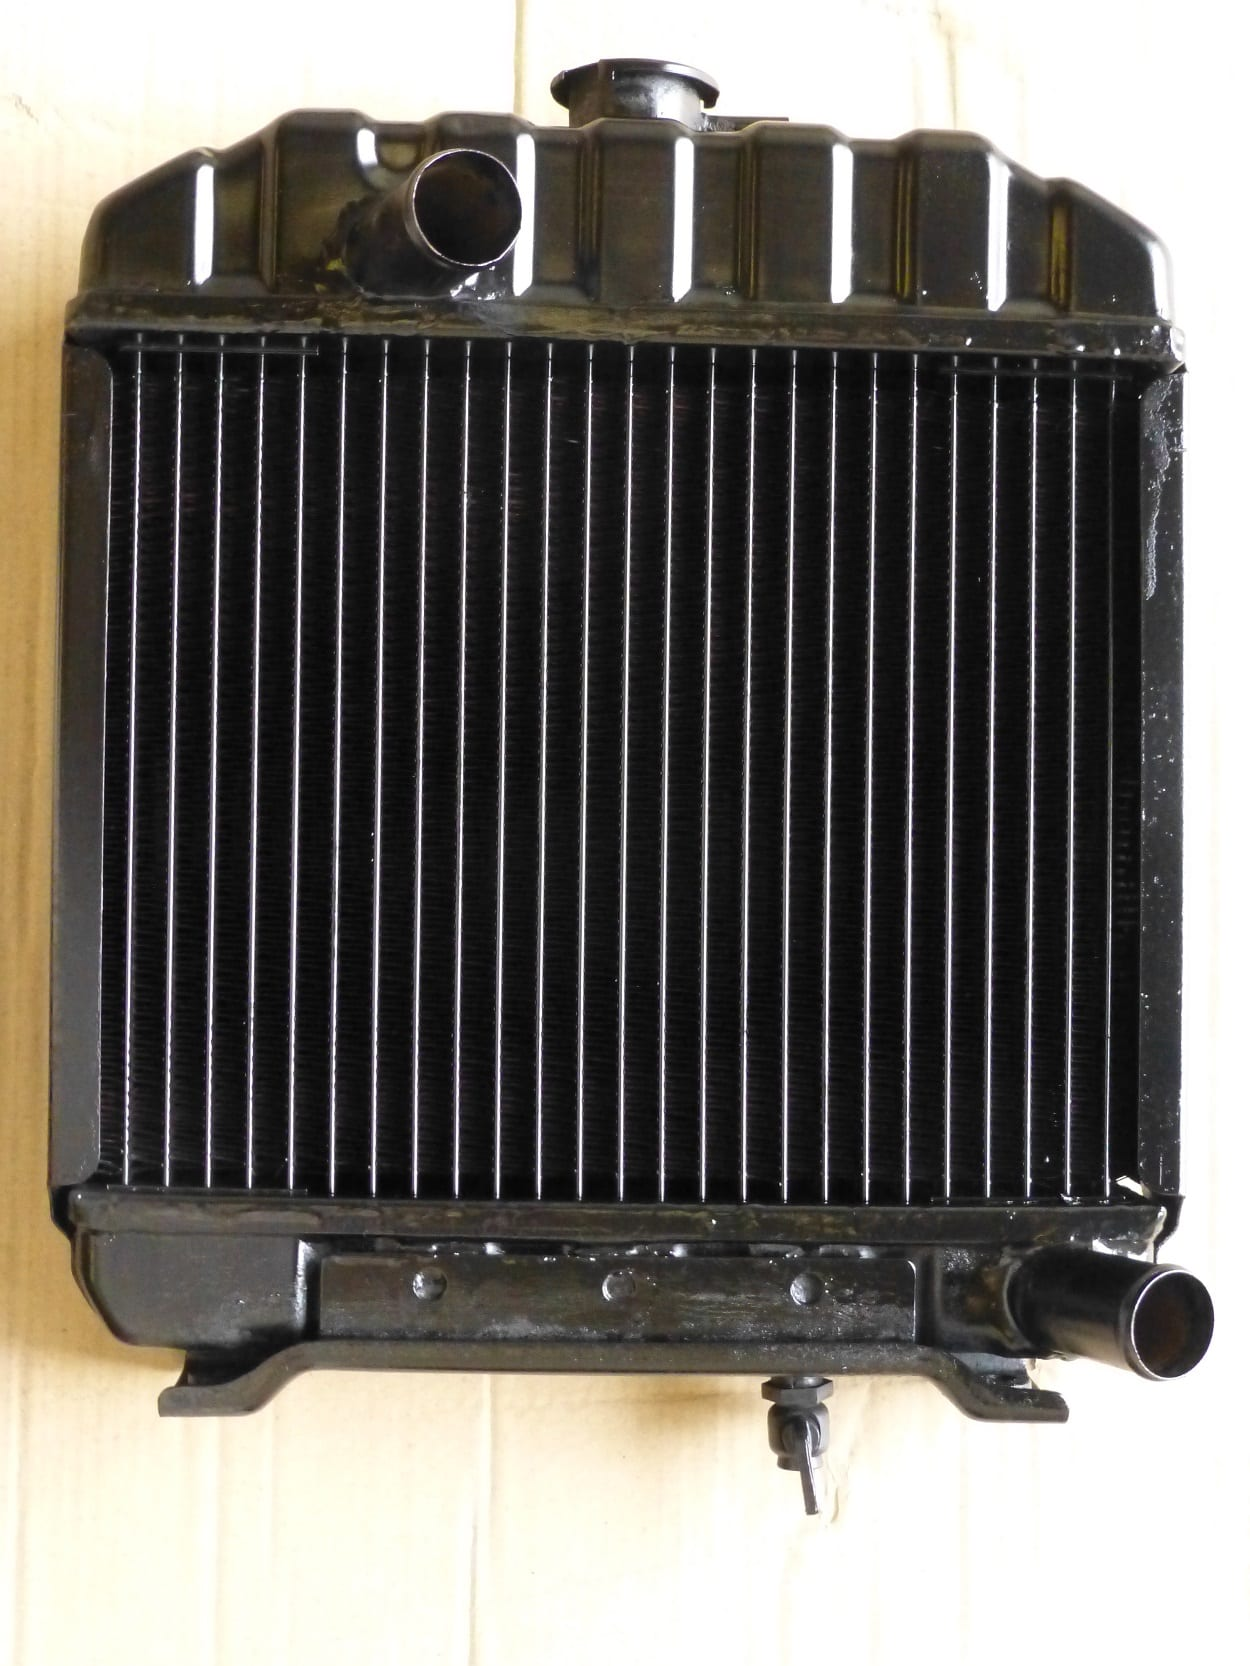 Kubota 6001 Mini Tractor Radiator Recored St Day